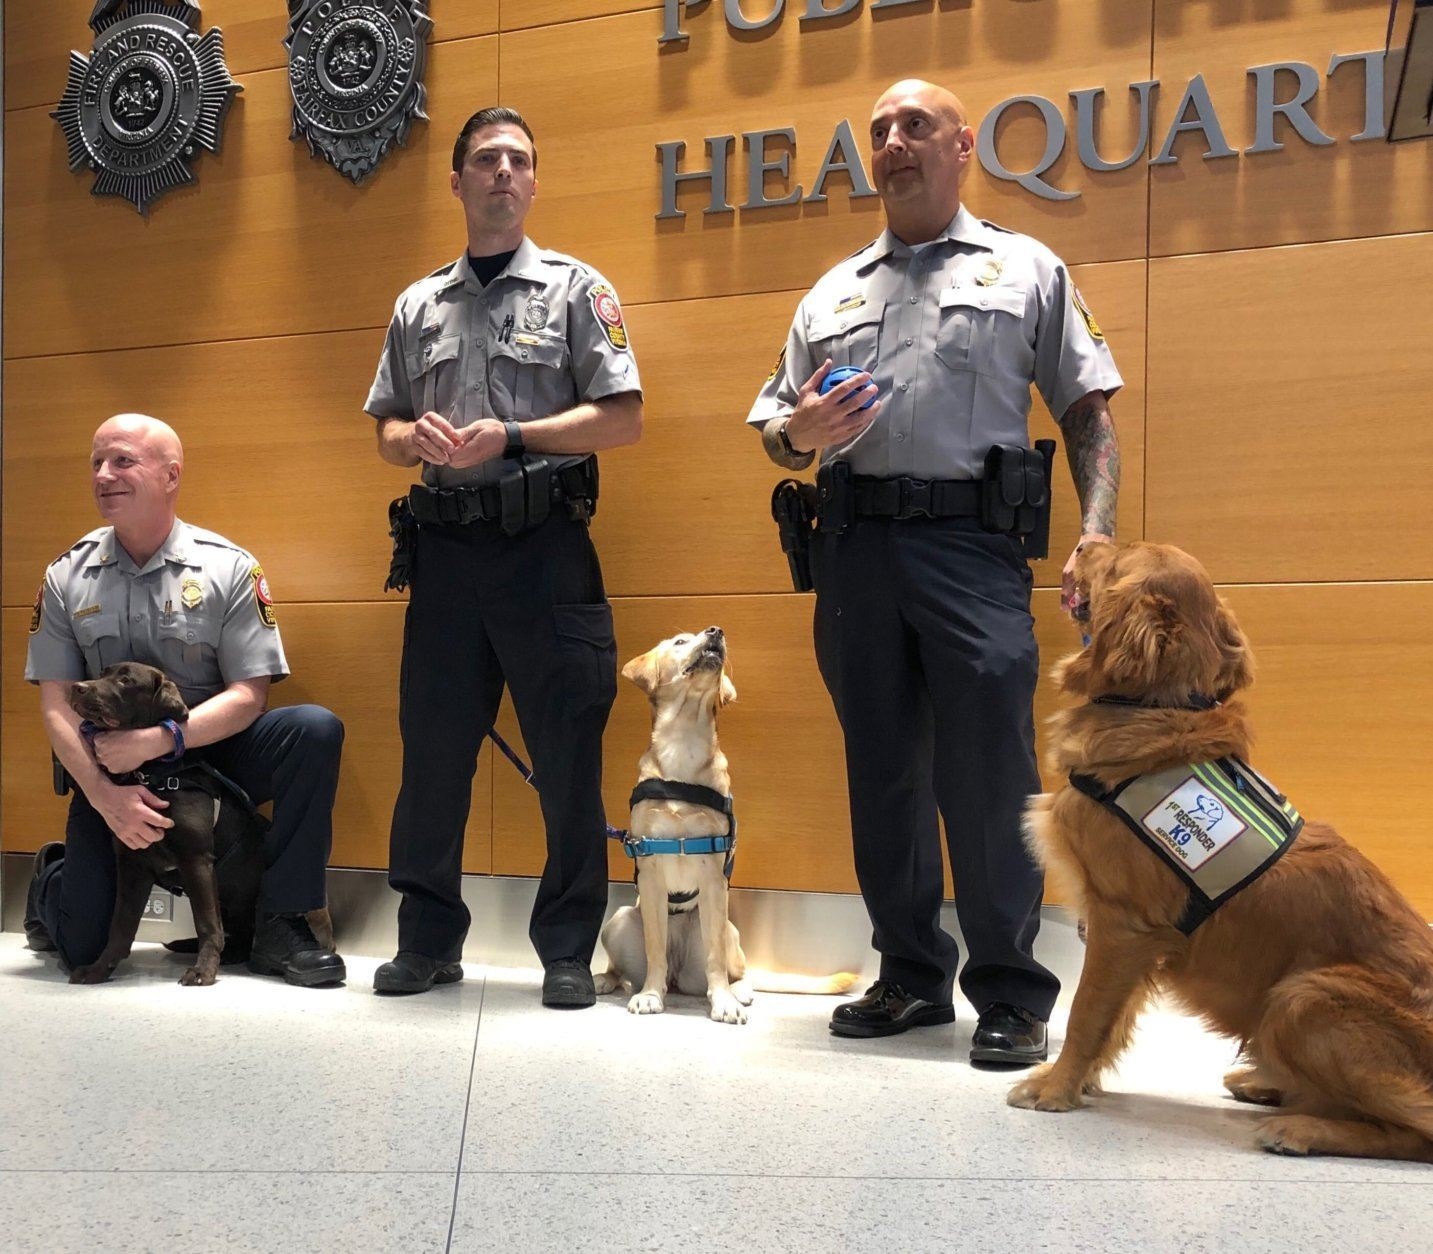 """<p>Among those taking on a dog for training is police Chief Ed Roessler. He stood as his dog, a chocolate Lab named Indy, sat at his feet.</p> <p>Roessler said Indy would eventually be placed with a disabled first responder.</p> <p>He explained some of the skills she'll have to master: """"How to go up and down an escalator, how to ride in an elevator, how to turn a light on and off, how to retrieve her leash.""""</p> <p>And, perhaps, the most important skill: how to provide comfort for someone suffering post-traumatic stress, Roessler said.</p> <p>""""She provides a lot of love and joy,"""" he added. """"She's just fun and gives love.""""</p>"""